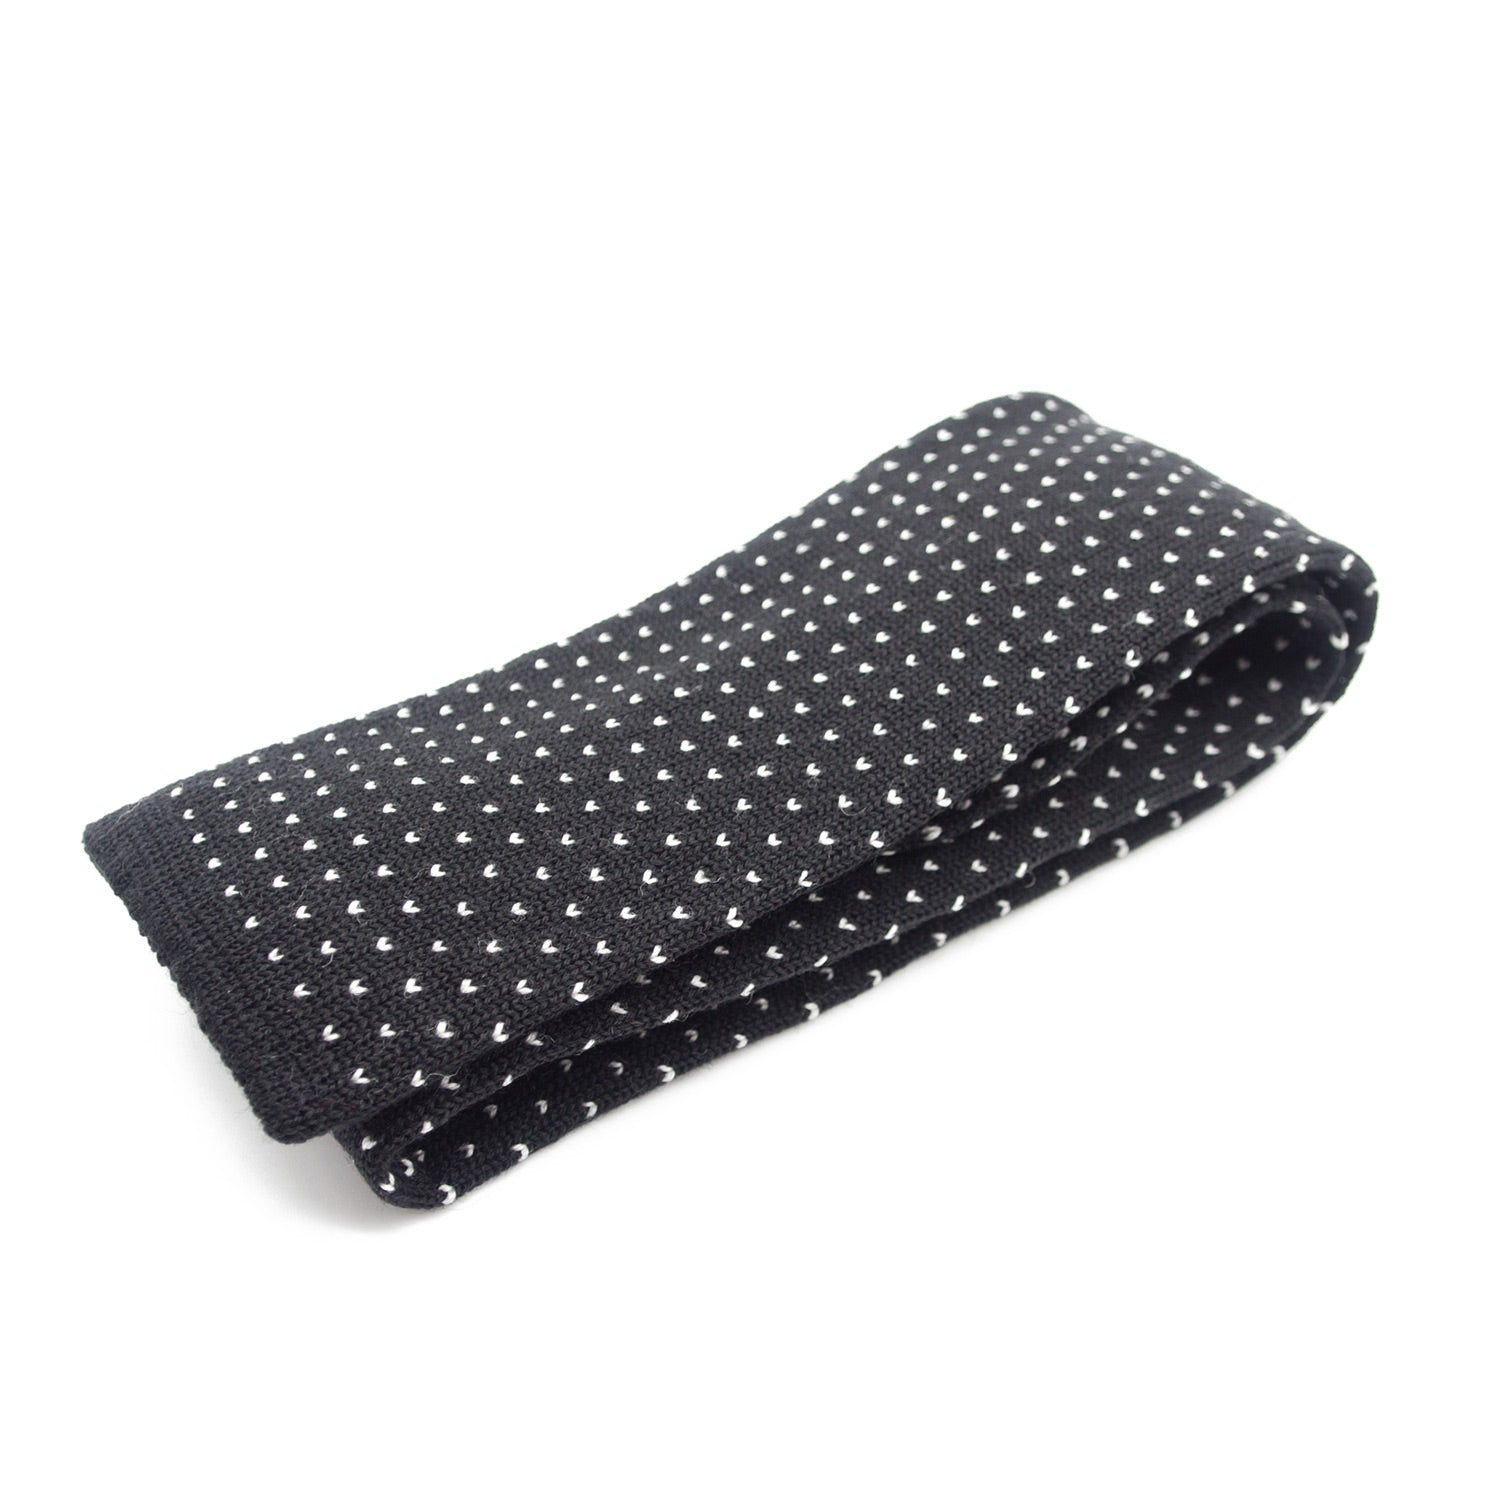 V Dots Wool Tie. 100% Biellese Wool. Made in Italy